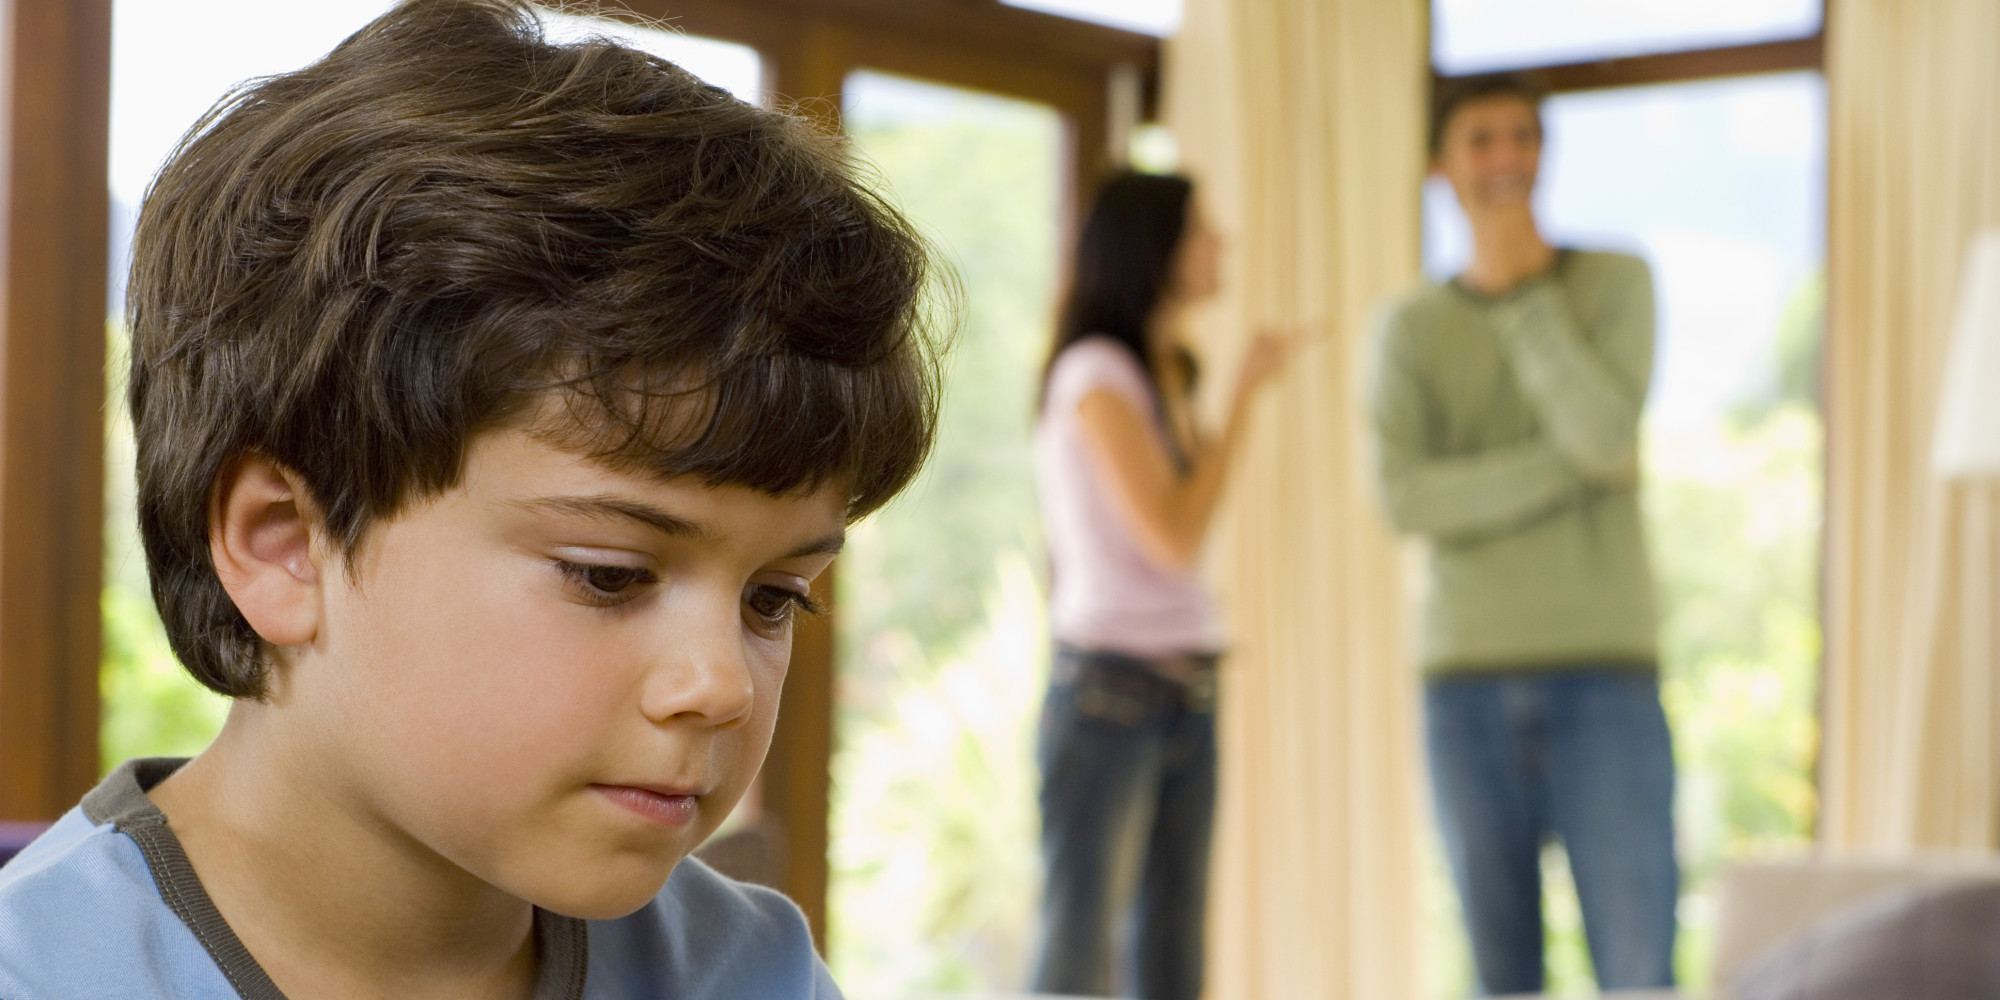 7 Ways Divorce Affects Kids According To The Kids